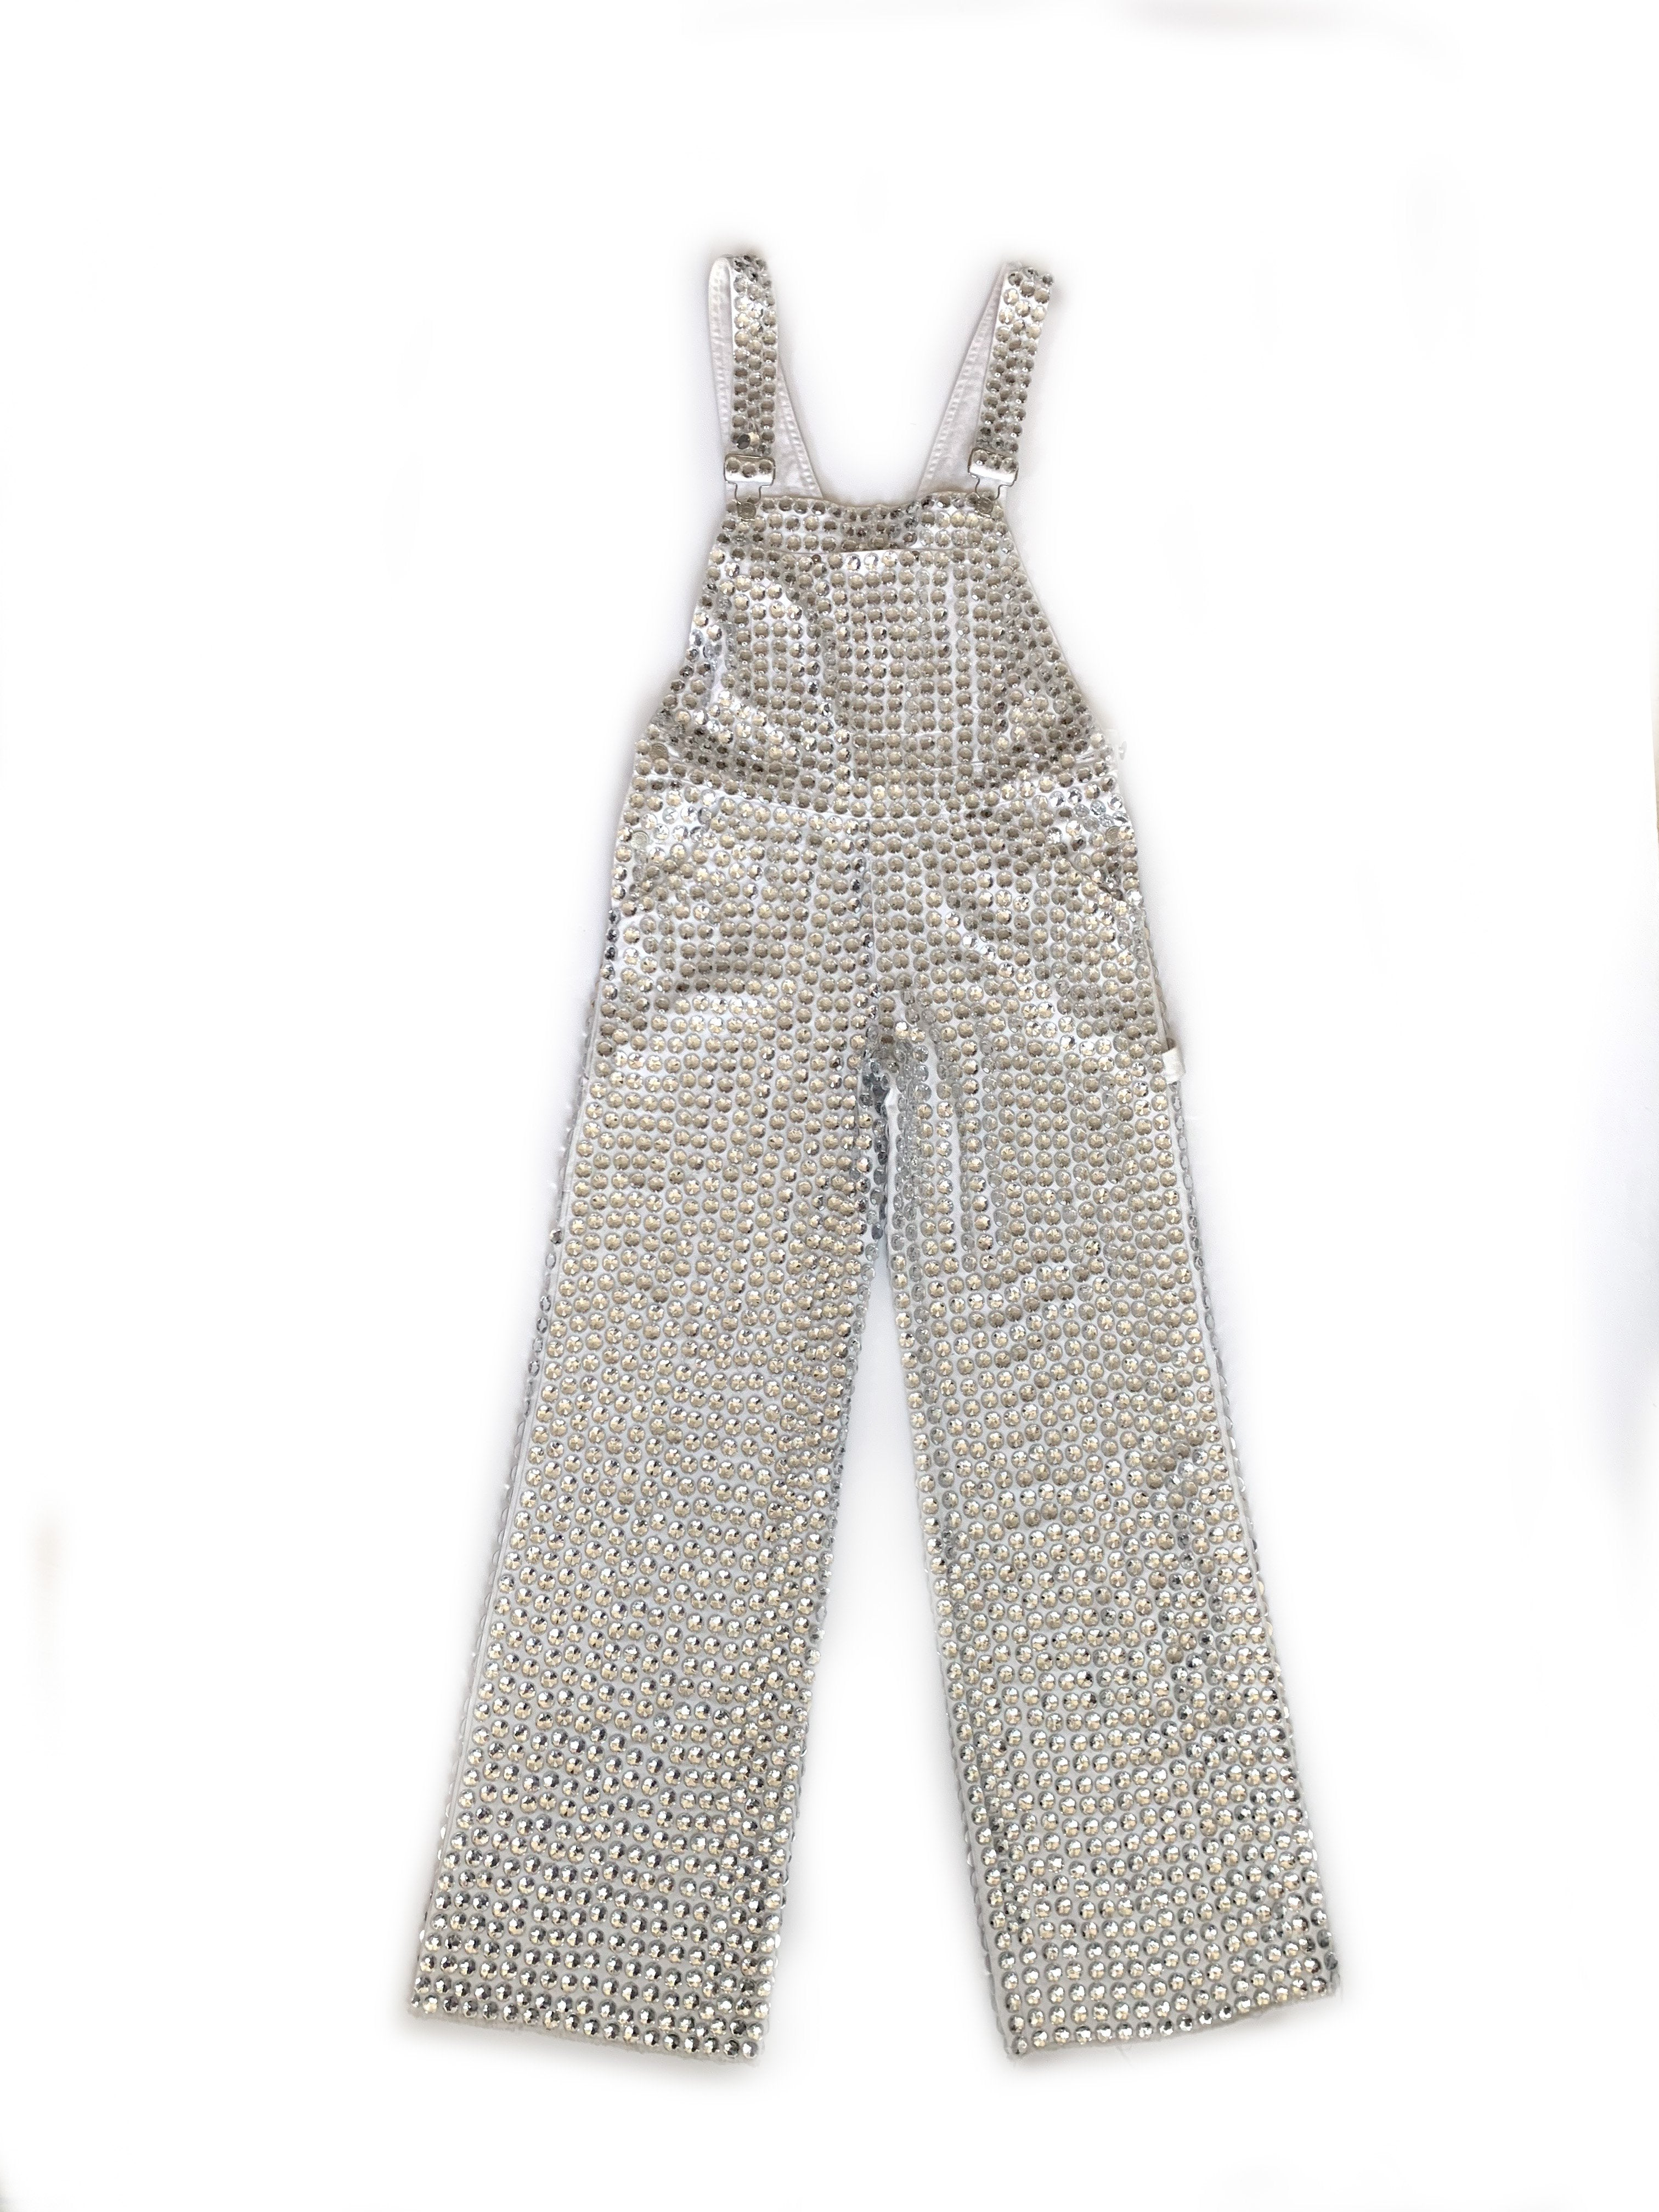 RARE ONE OFF SAMPLE! Jeweled Overalls